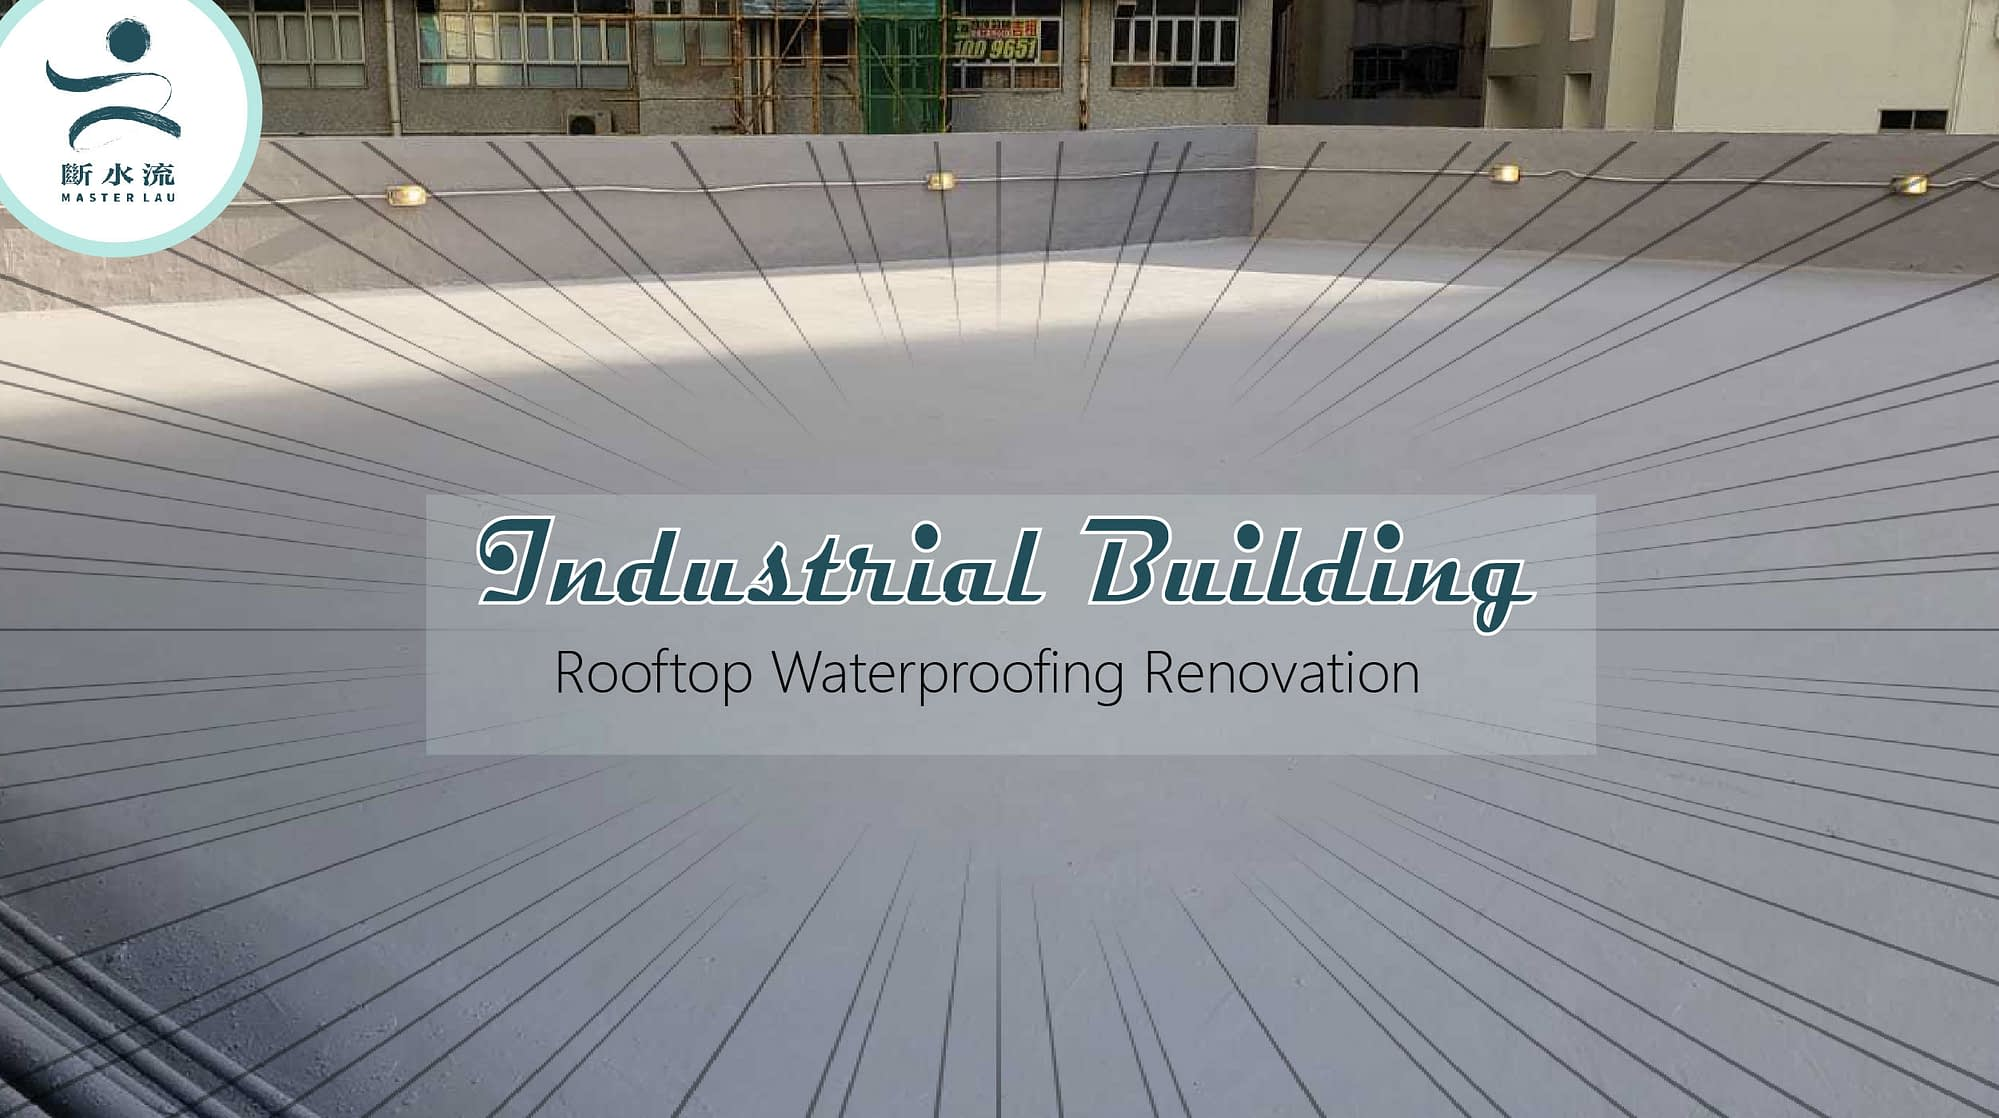 [Photo Record] Waterproofing Renovation of Industrial Building